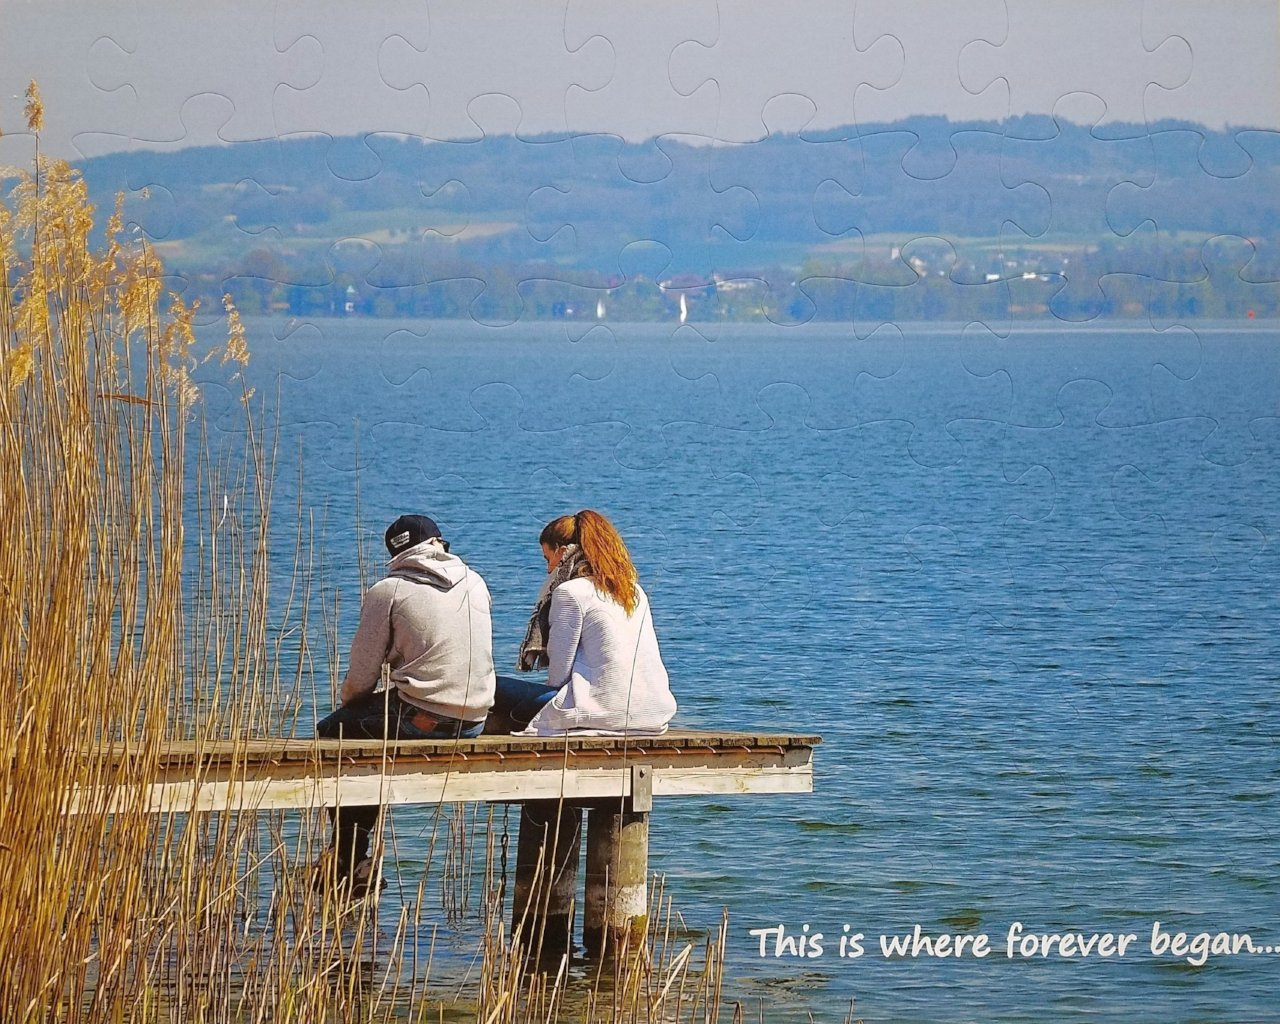 Wedding Guest Book Jigsaw Puzzle Pieces.  Blue photo of couple sitting on dock marriage proposal.  Marry Me proposal puzzle